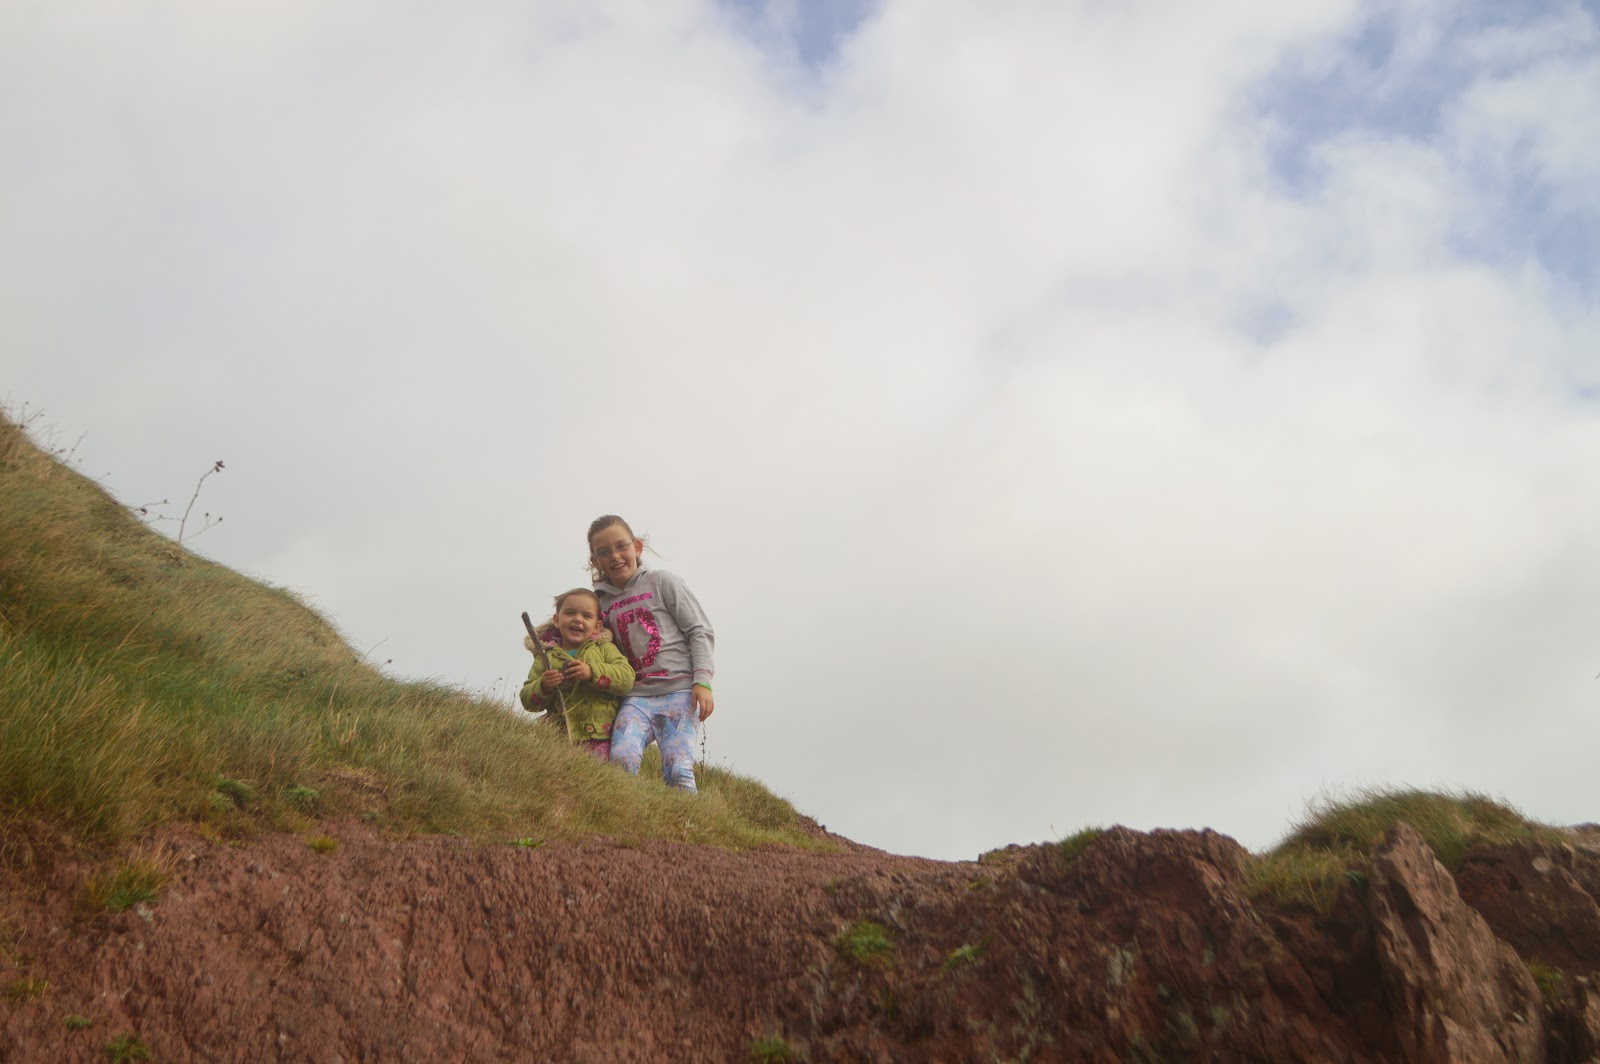 Girls on Top of Rocks at Manorbier Beach, Pembrokeshire, Wales